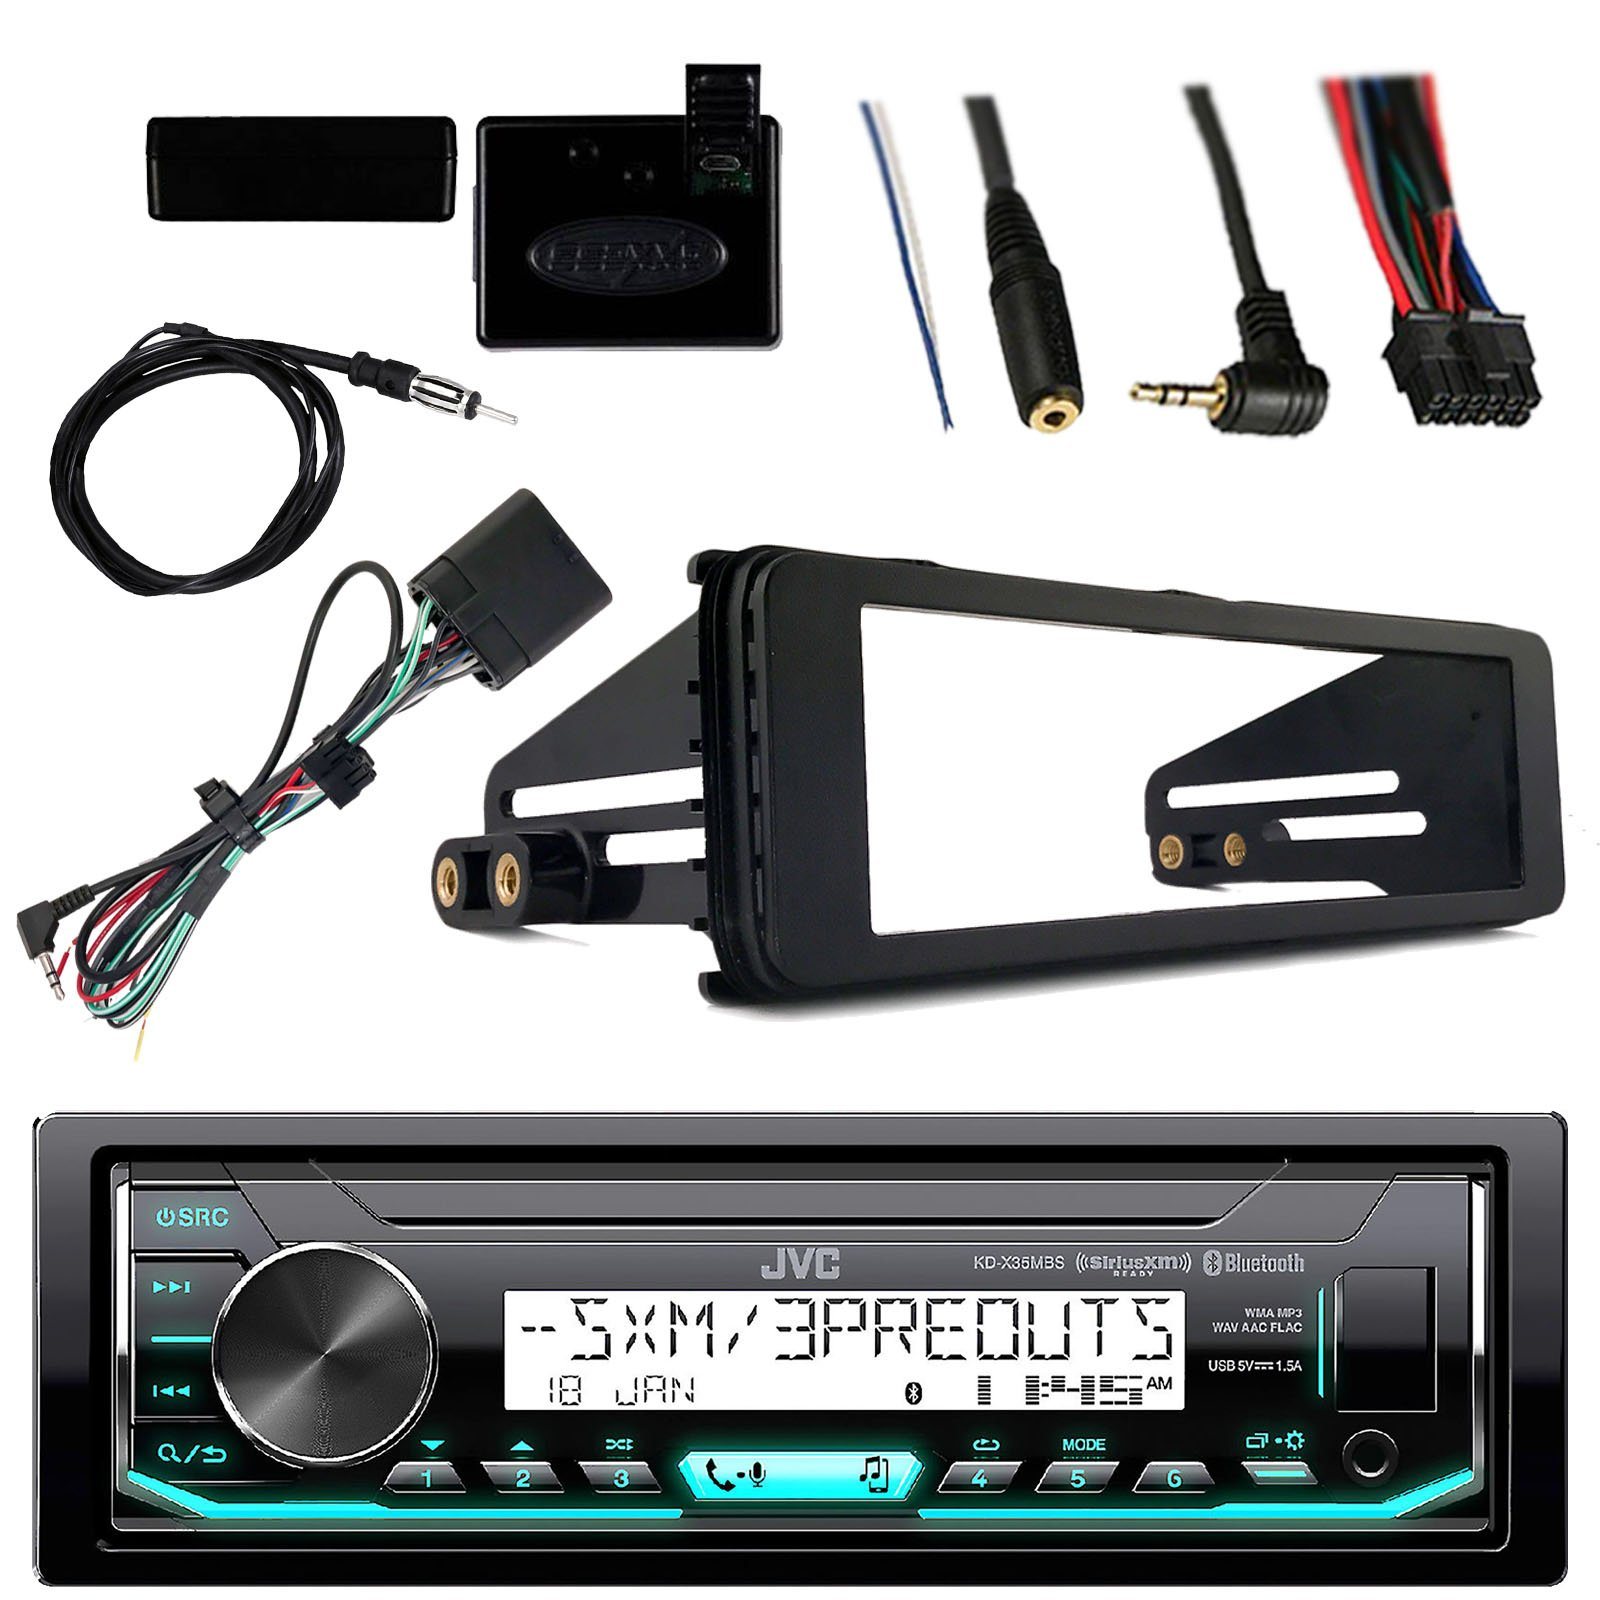 JVC Marine Radio Stereo Bluetooth Receiver Bundle with Adapter Install Dash Kit, Handle Bar Control, Enrock Wire Antenna For 1998-13 Harley Davidson Motorcycle Touring Flht Flhx Flhtc by Enrock JVC Metra